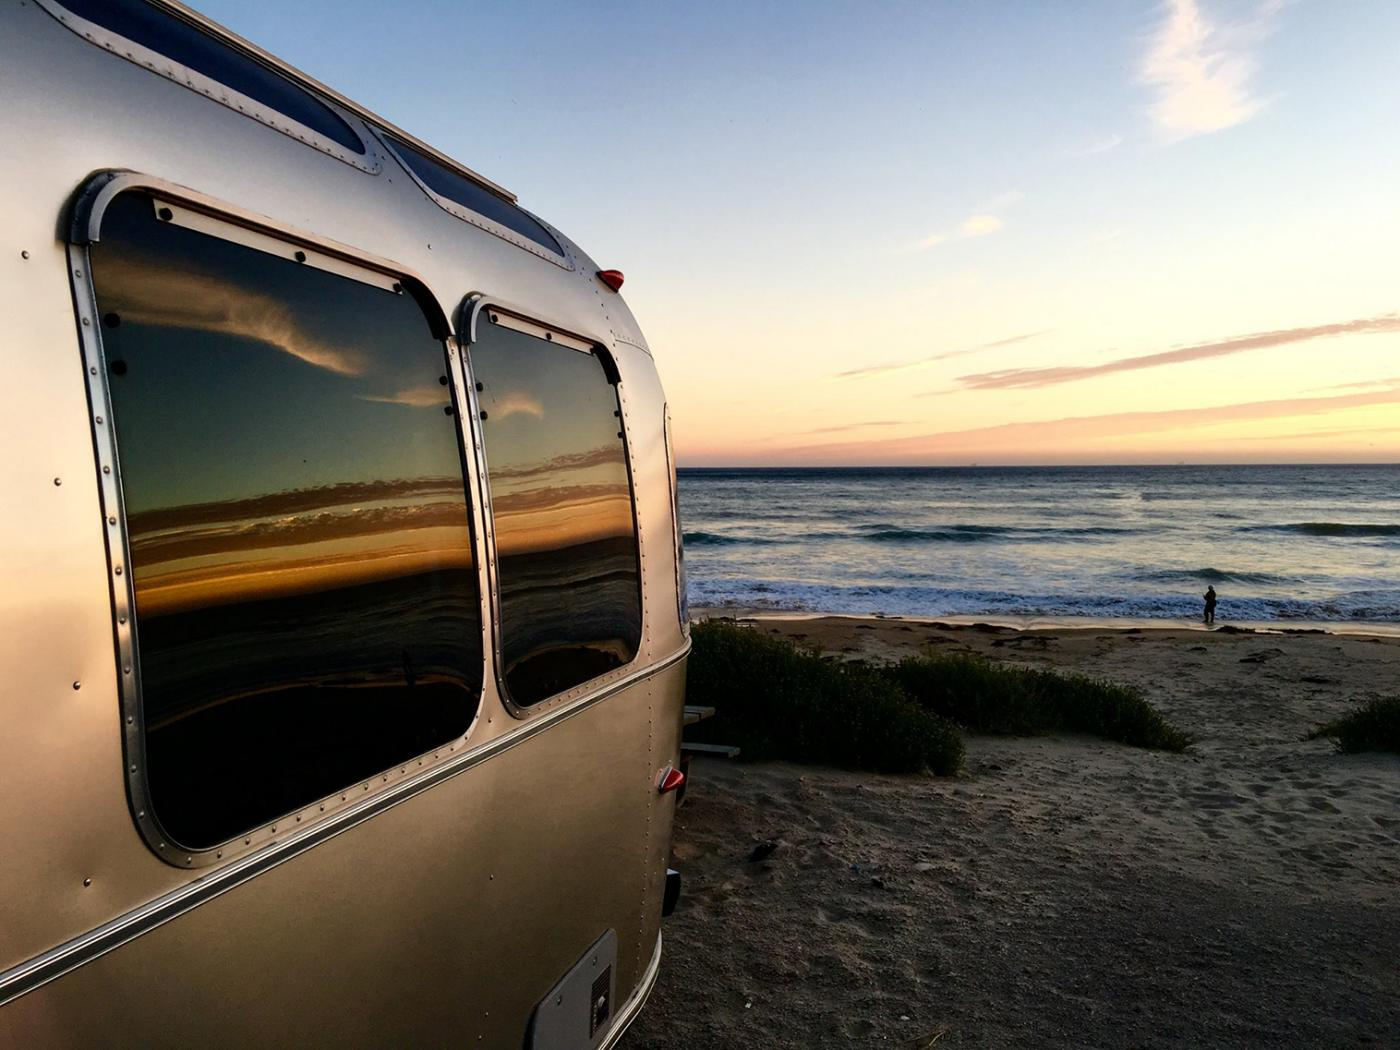 Rent this Airstream RV to make your next summer trip one to remember.